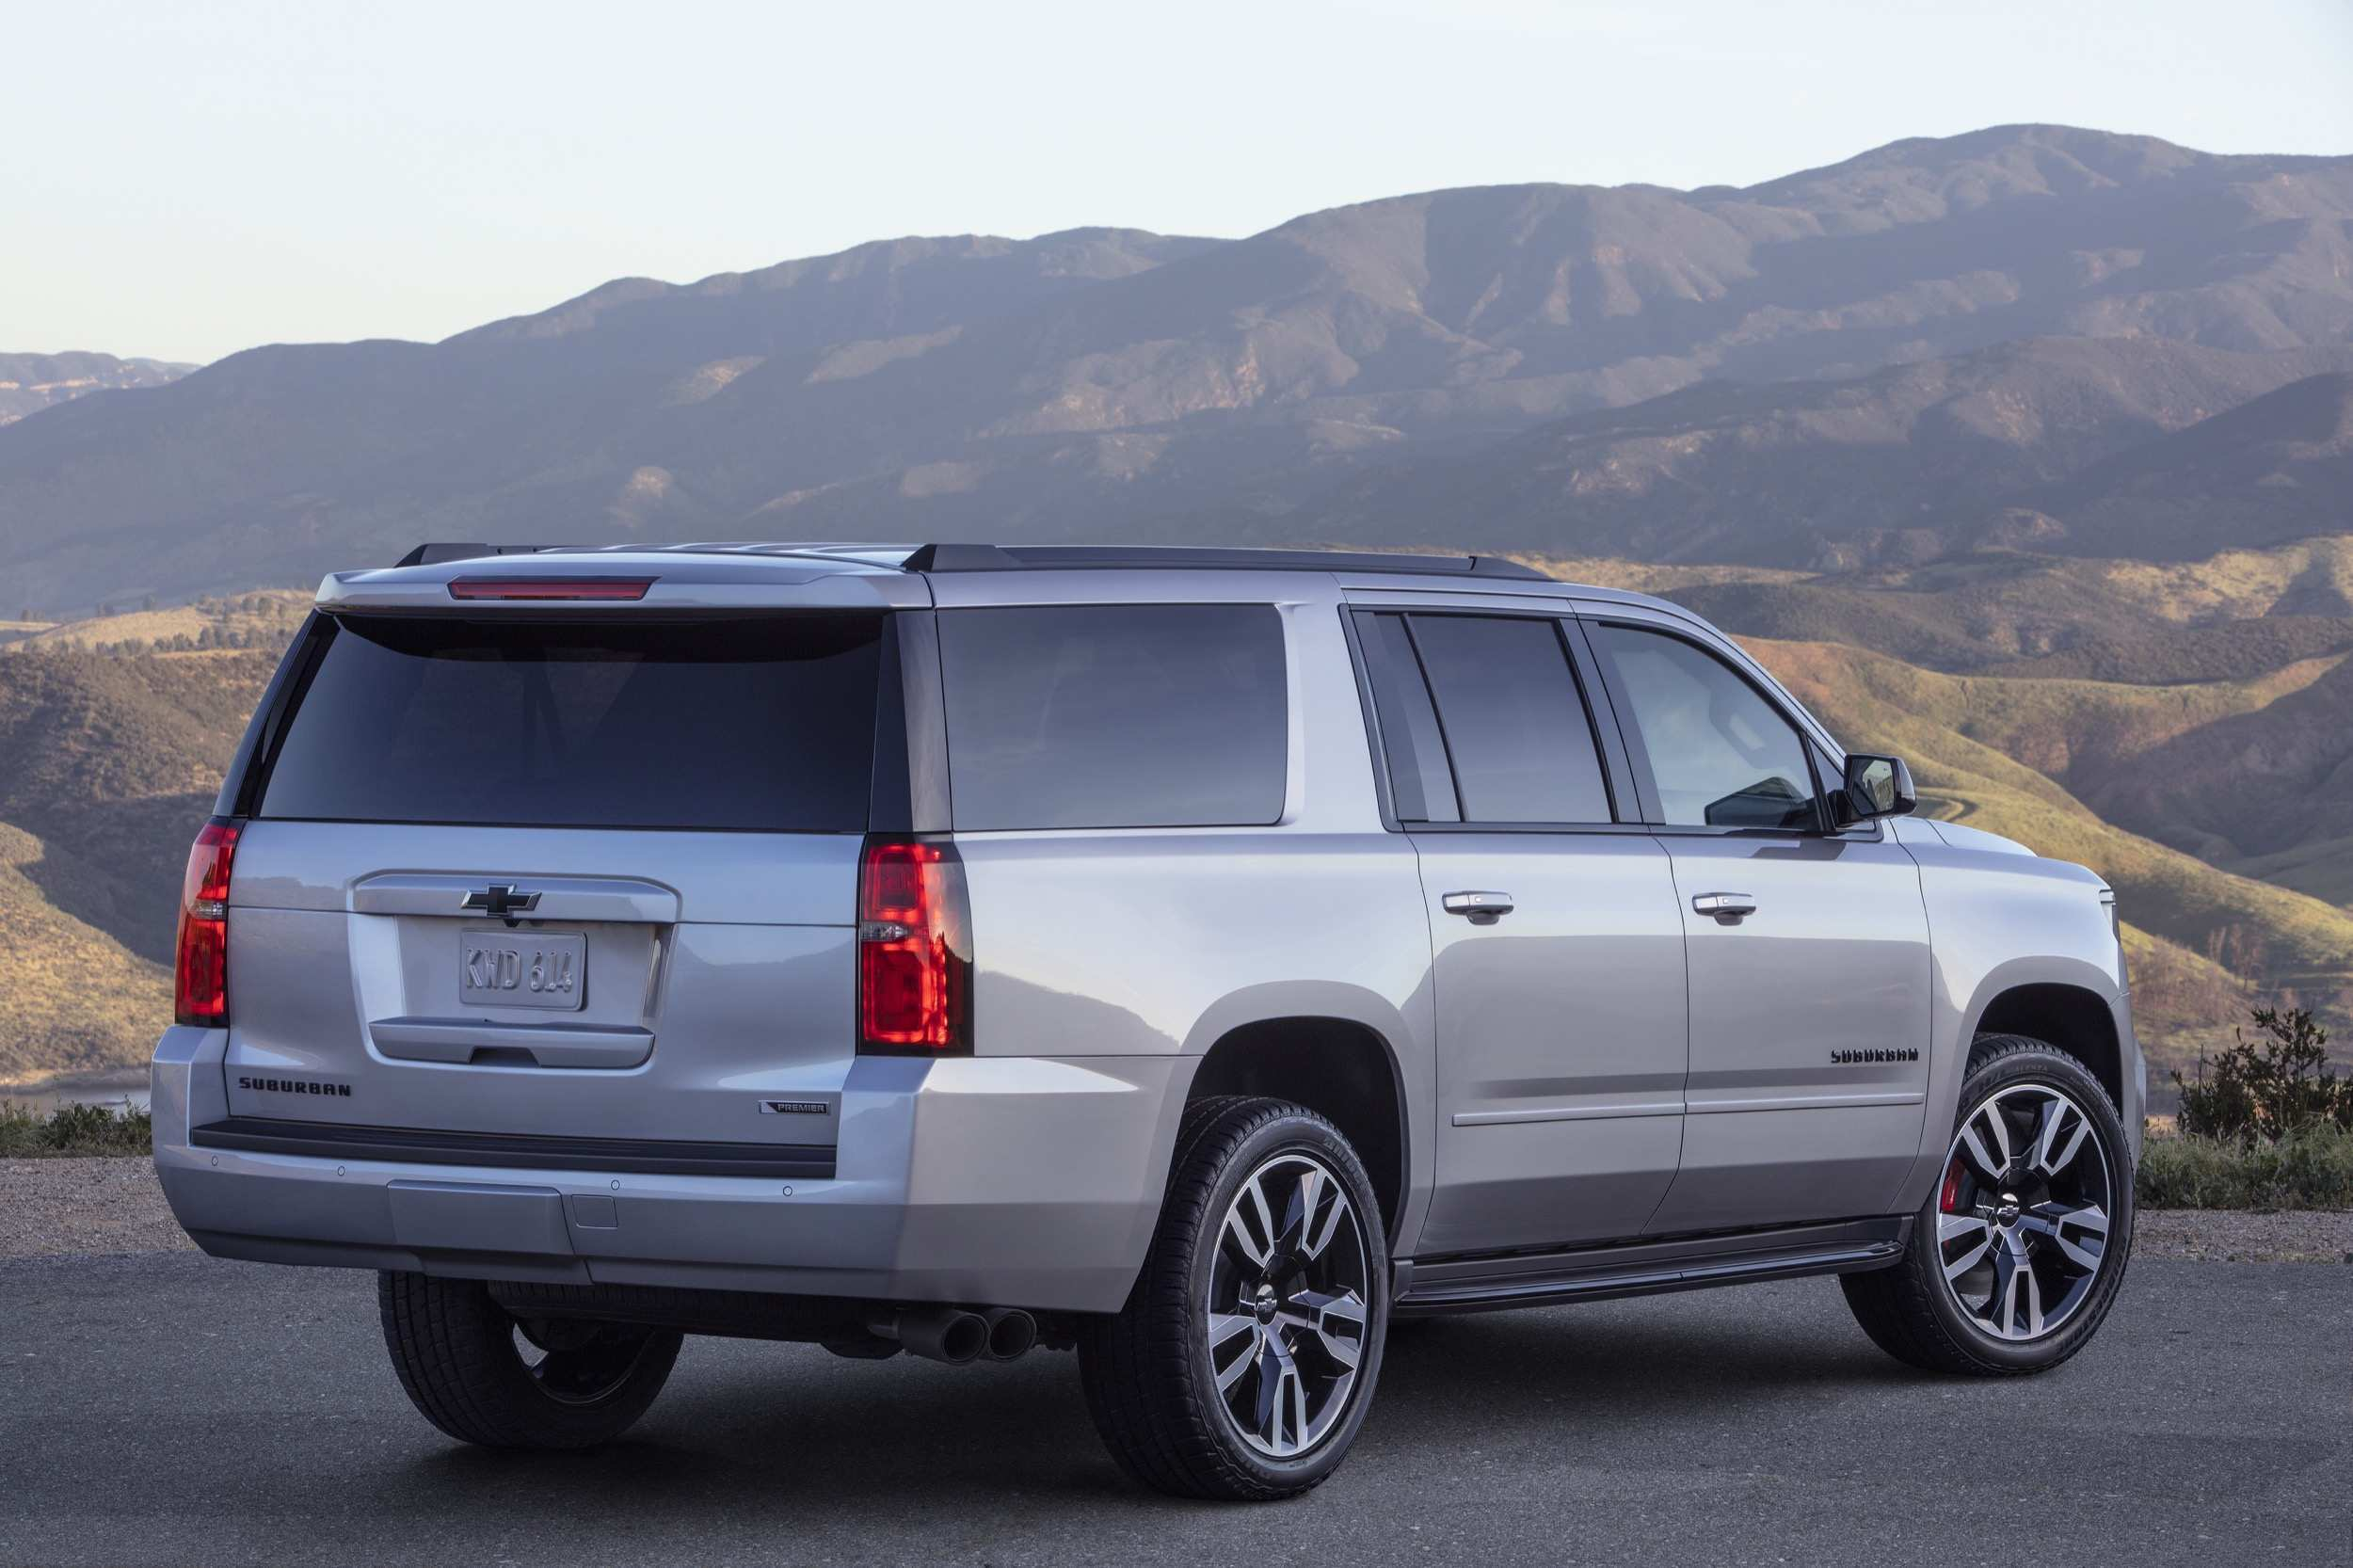 52 New 2020 Chevrolet Suburban Specs and Review for 2020 Chevrolet Suburban